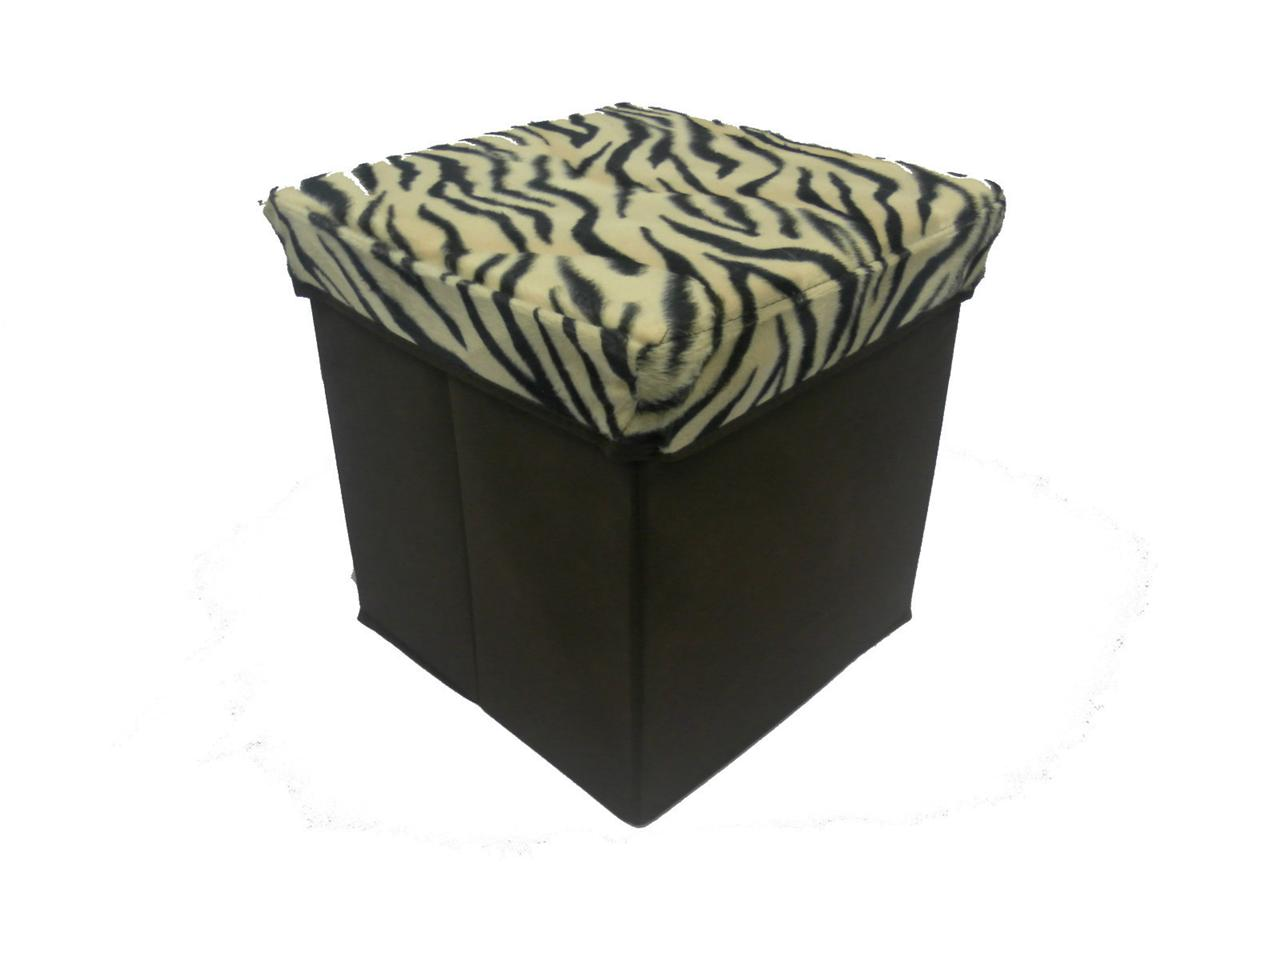 SMALL SQUARE FOLDING STORAGE OTTOMAN FOOT STOOL